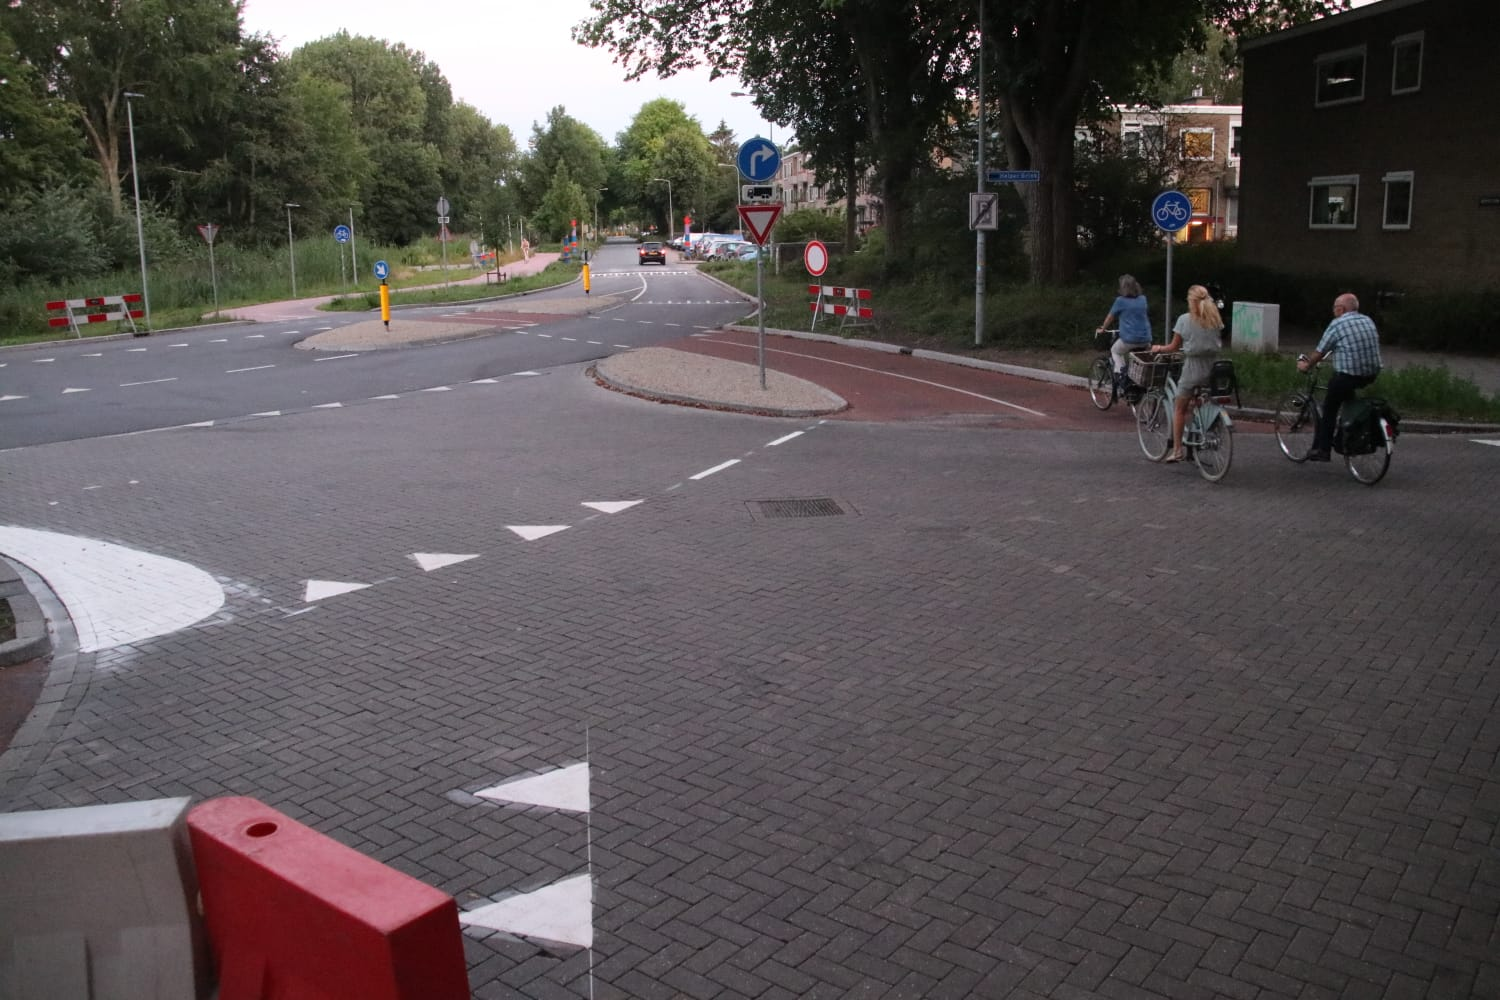 The northern part Helperzoom has become a bike street